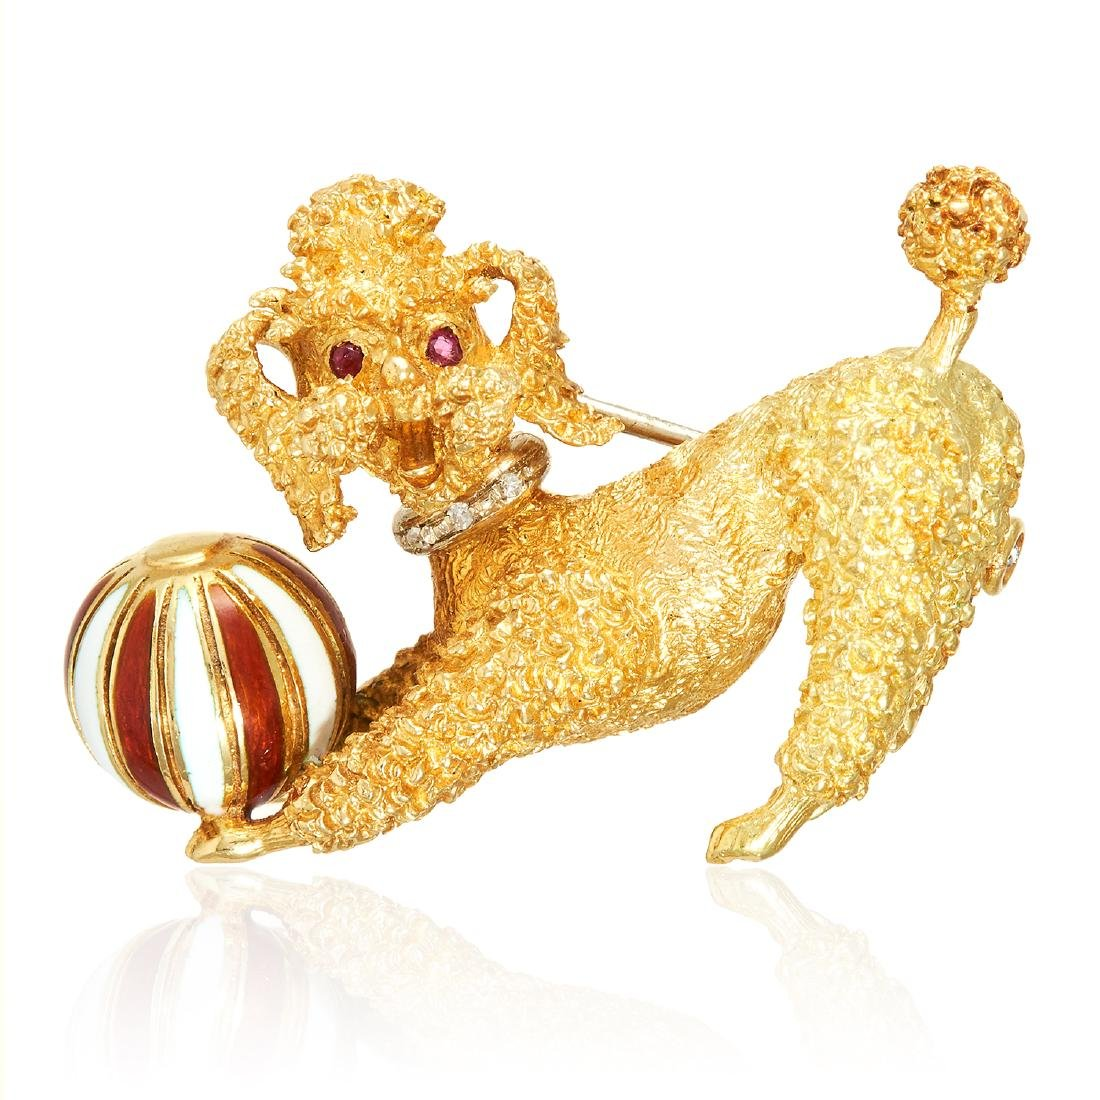 A VINTAGE RUBY, DIAMOND AND ENAMEL POODLE DOG BROOCH in